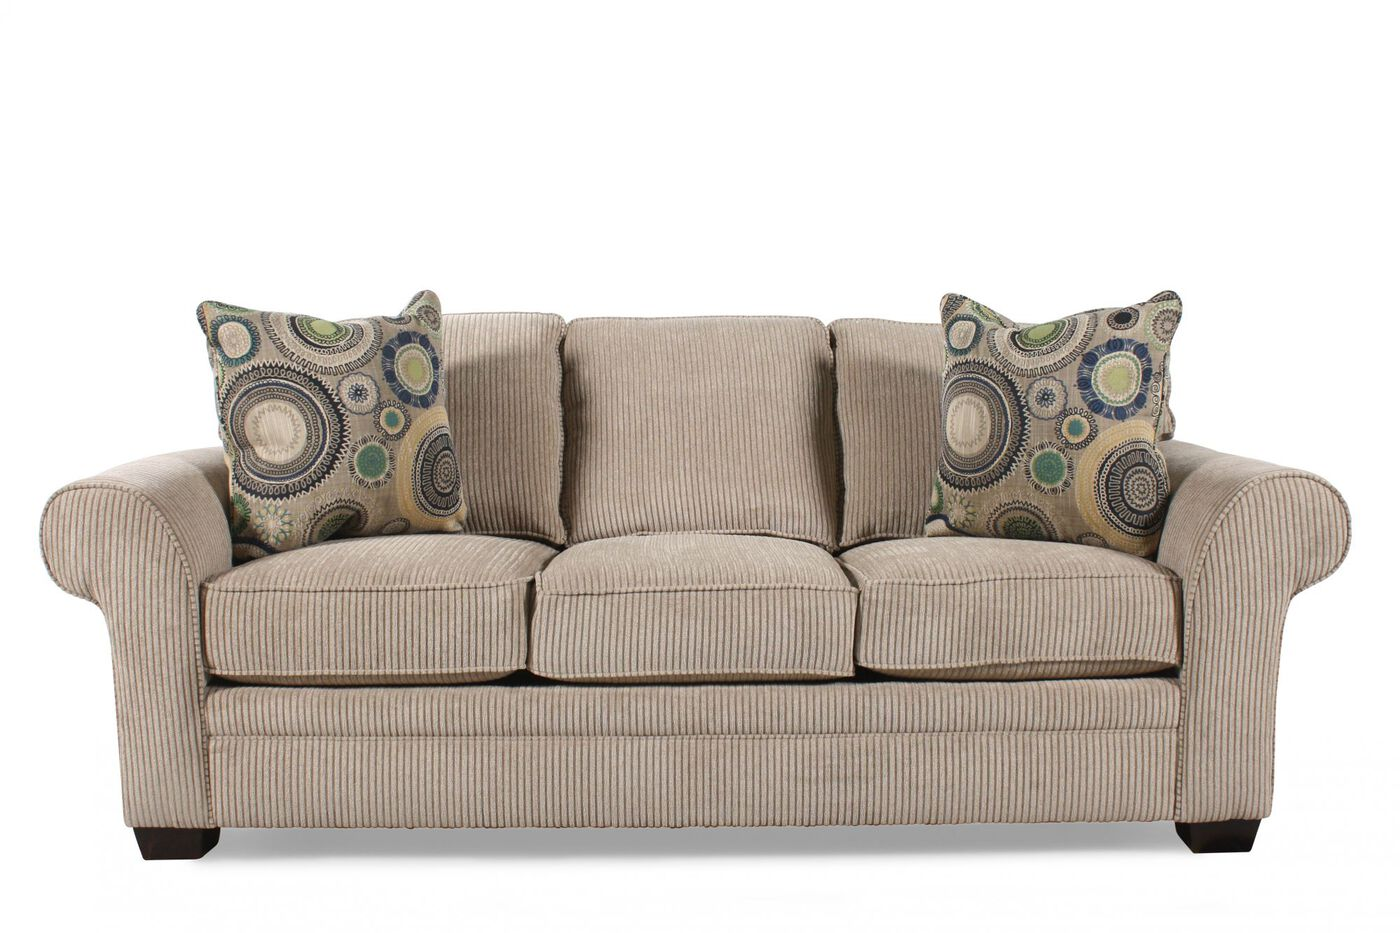 Broyhill Zachary Queen Sleeper Sofa Mathis Brothers  : BROY 7902 75E0478785 93 from www.mathisbrothers.com size 1400 x 933 jpeg 159kB